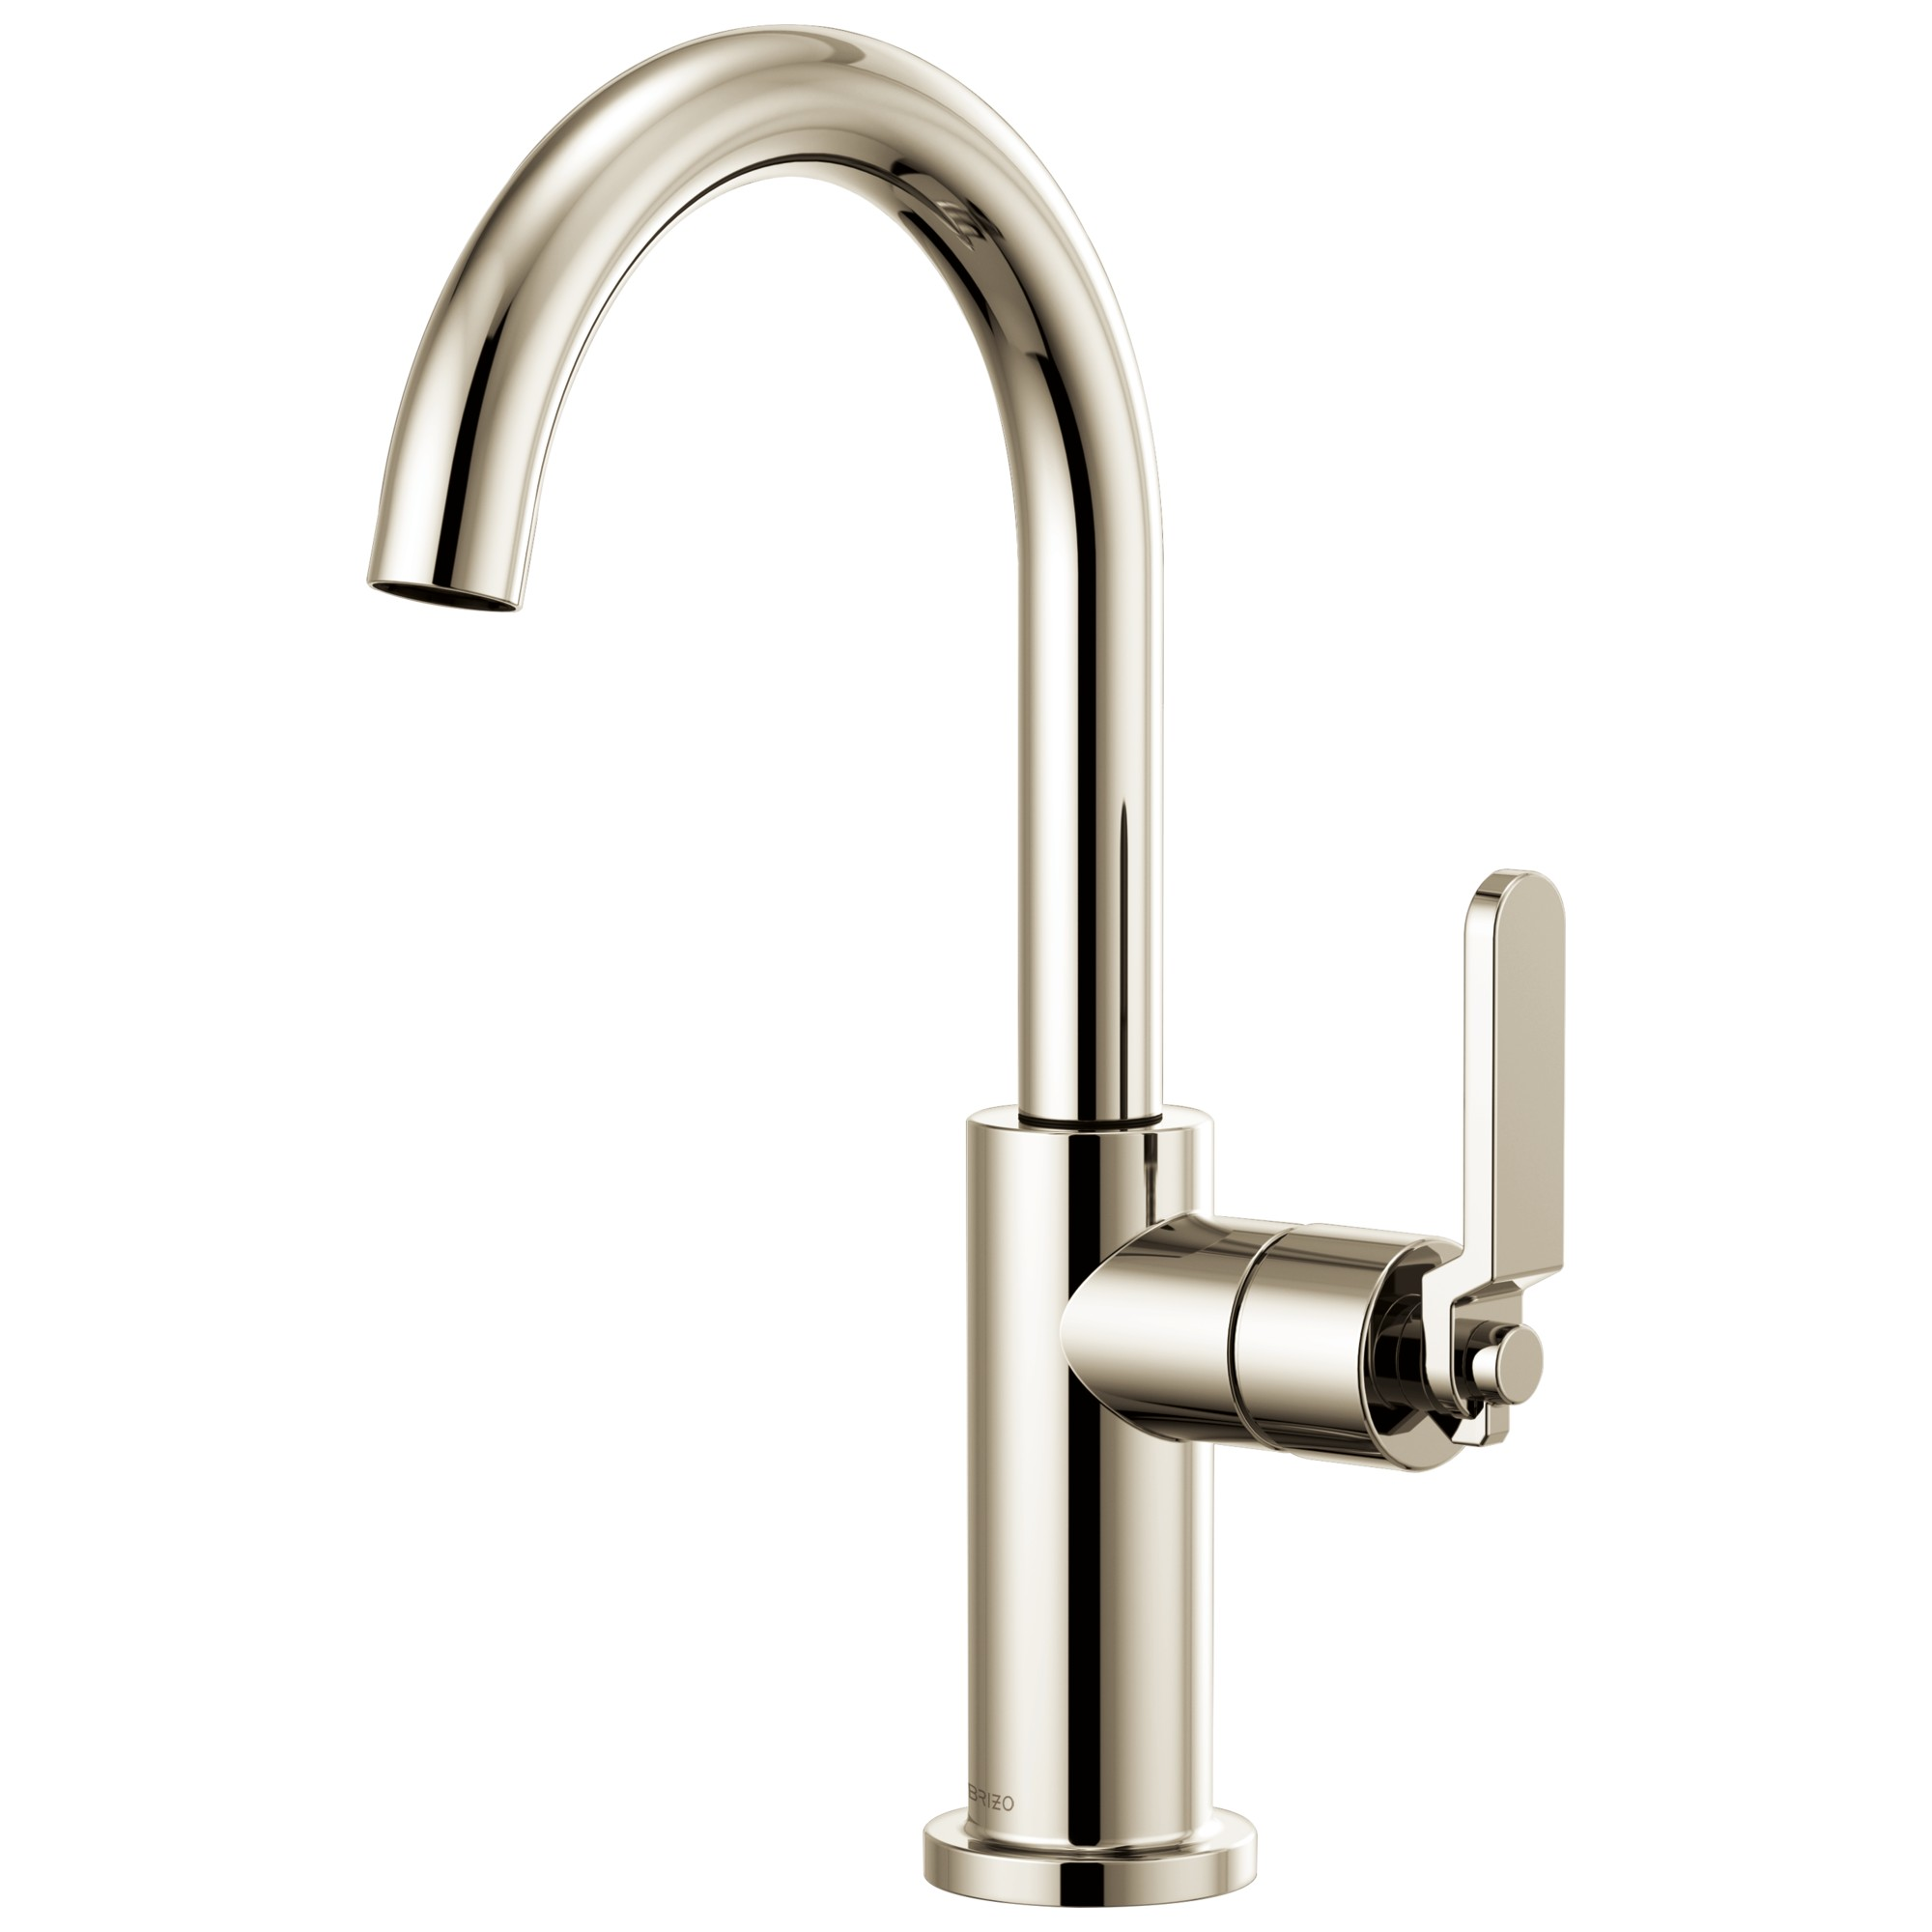 Brizo 61044LF-PN Litze Bar Faucet with Arc Spout and Industrial Handle - Polished Nickel